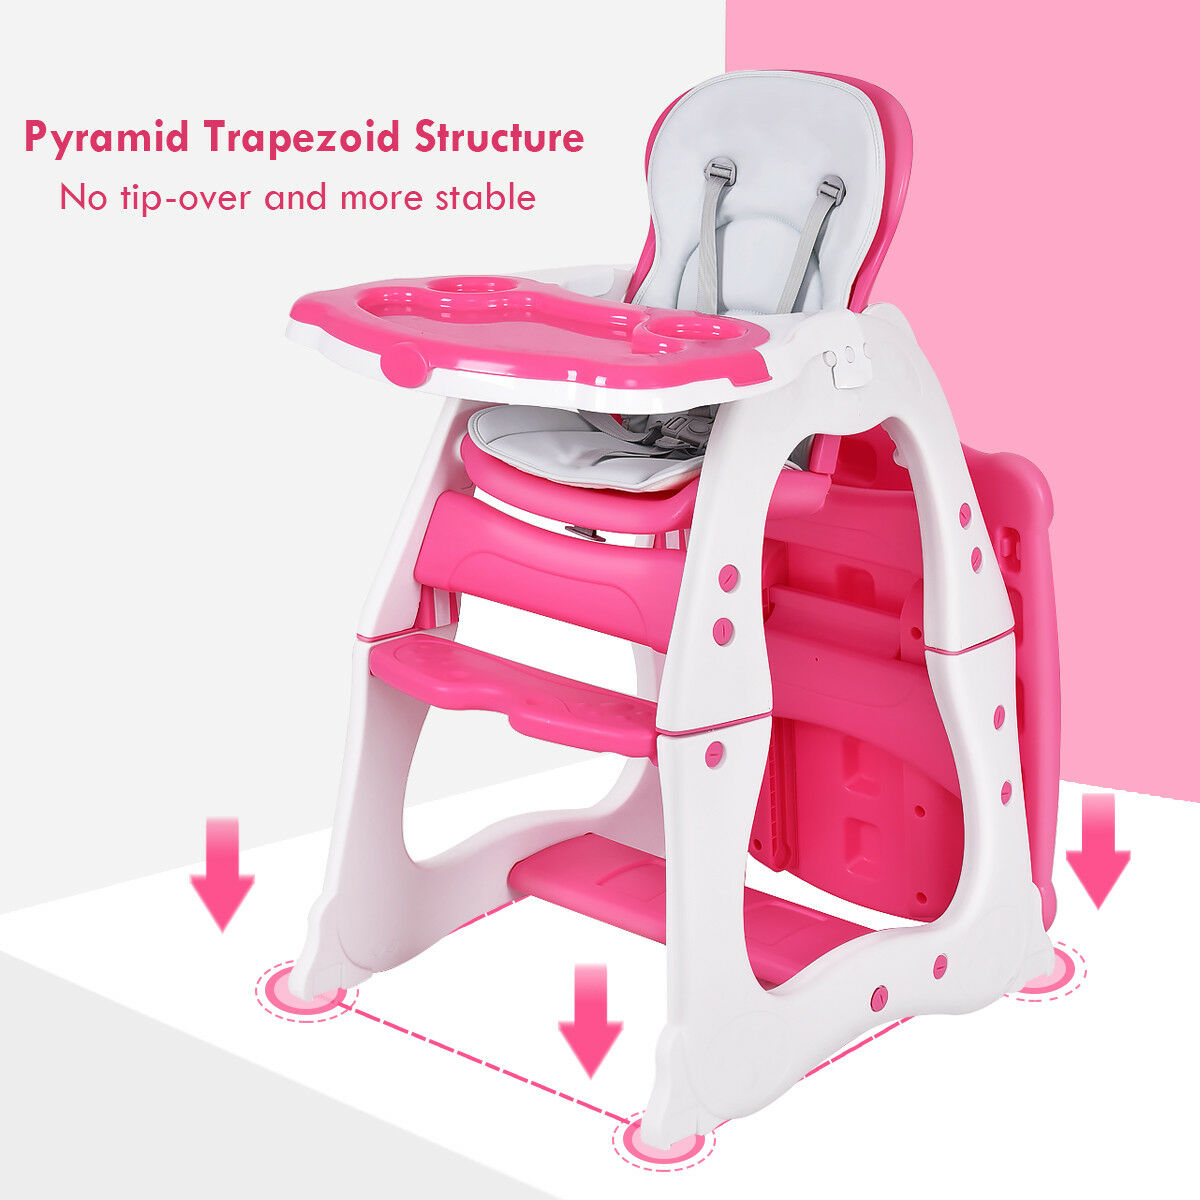 3 in 1 Baby High Chair Convertible Play Table Seat Booster Toddler Feeding Tray - image 2 de 10